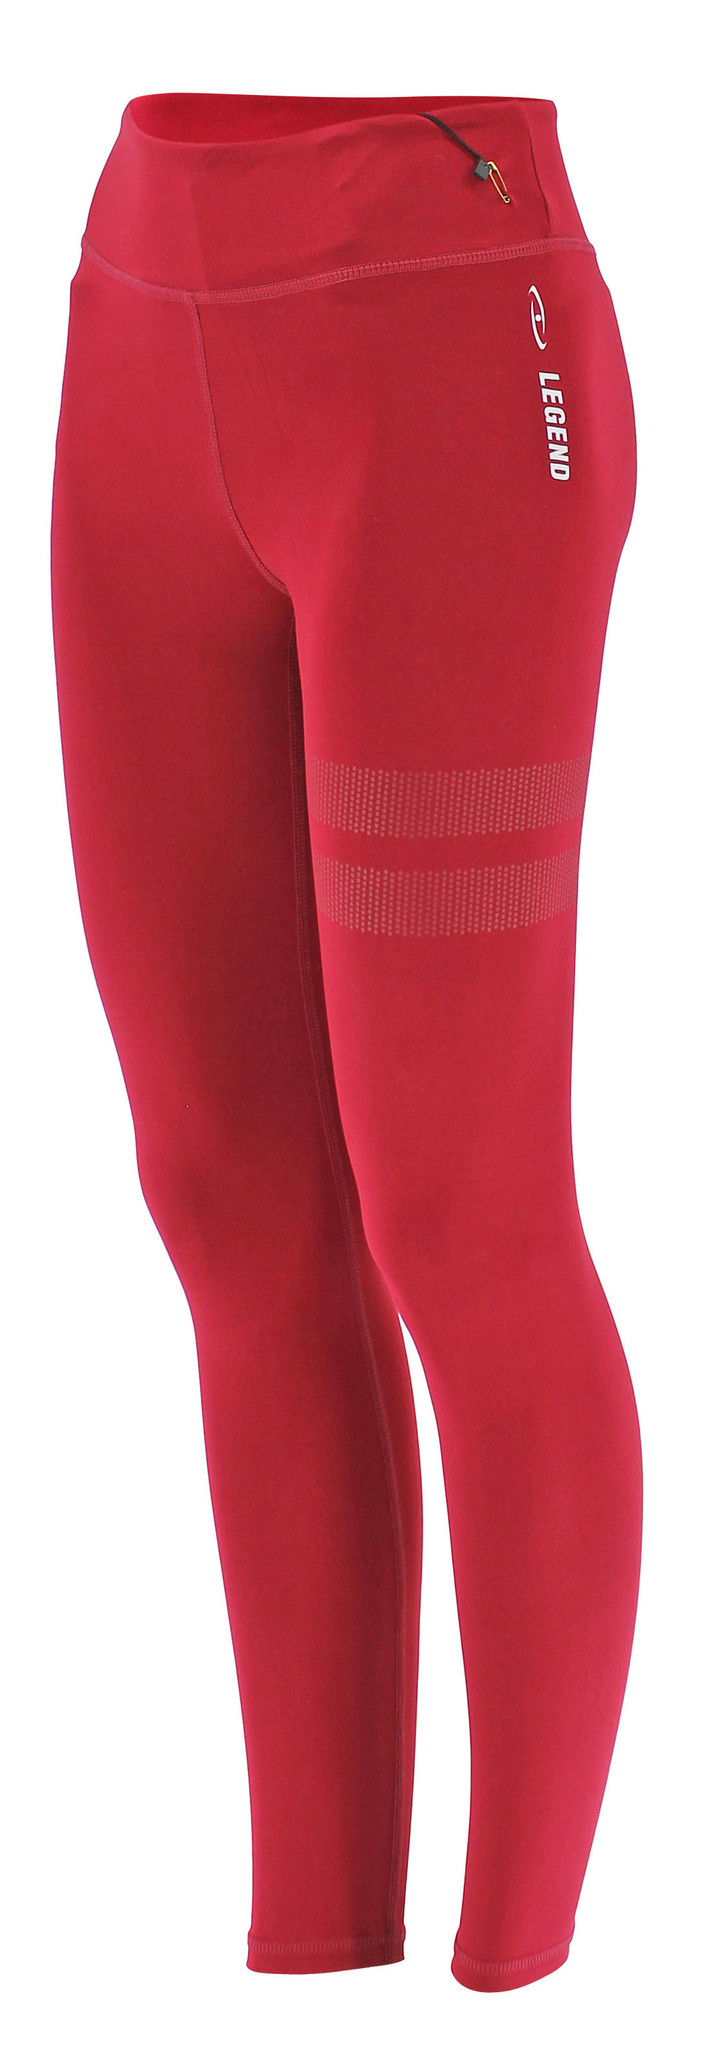 Sportlegging Red with white